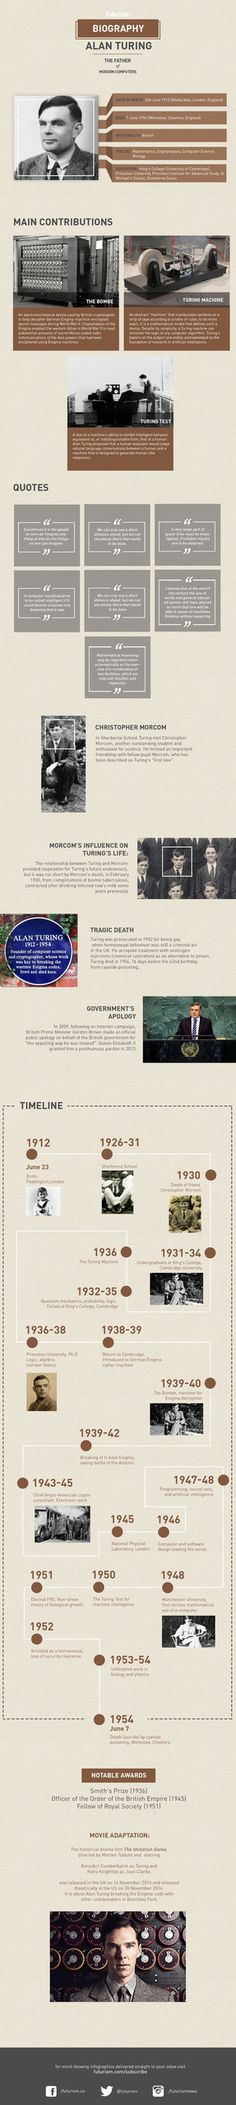 He broke the Nazi Enigma code during World War II, and went on to become the father of computer science. This is the story of Alan Turing, history's most important codebreaker. http://futurism.com/images/alan-turing-the-father-of-computing-infographic/?utm_campaign=coschedule&utm_source=pinterest&utm_medium=Futurism&utm_content=Alan%20Turing%3A%20The%20Father%20of%20Computer%20Science%20%5BInfographic%5D